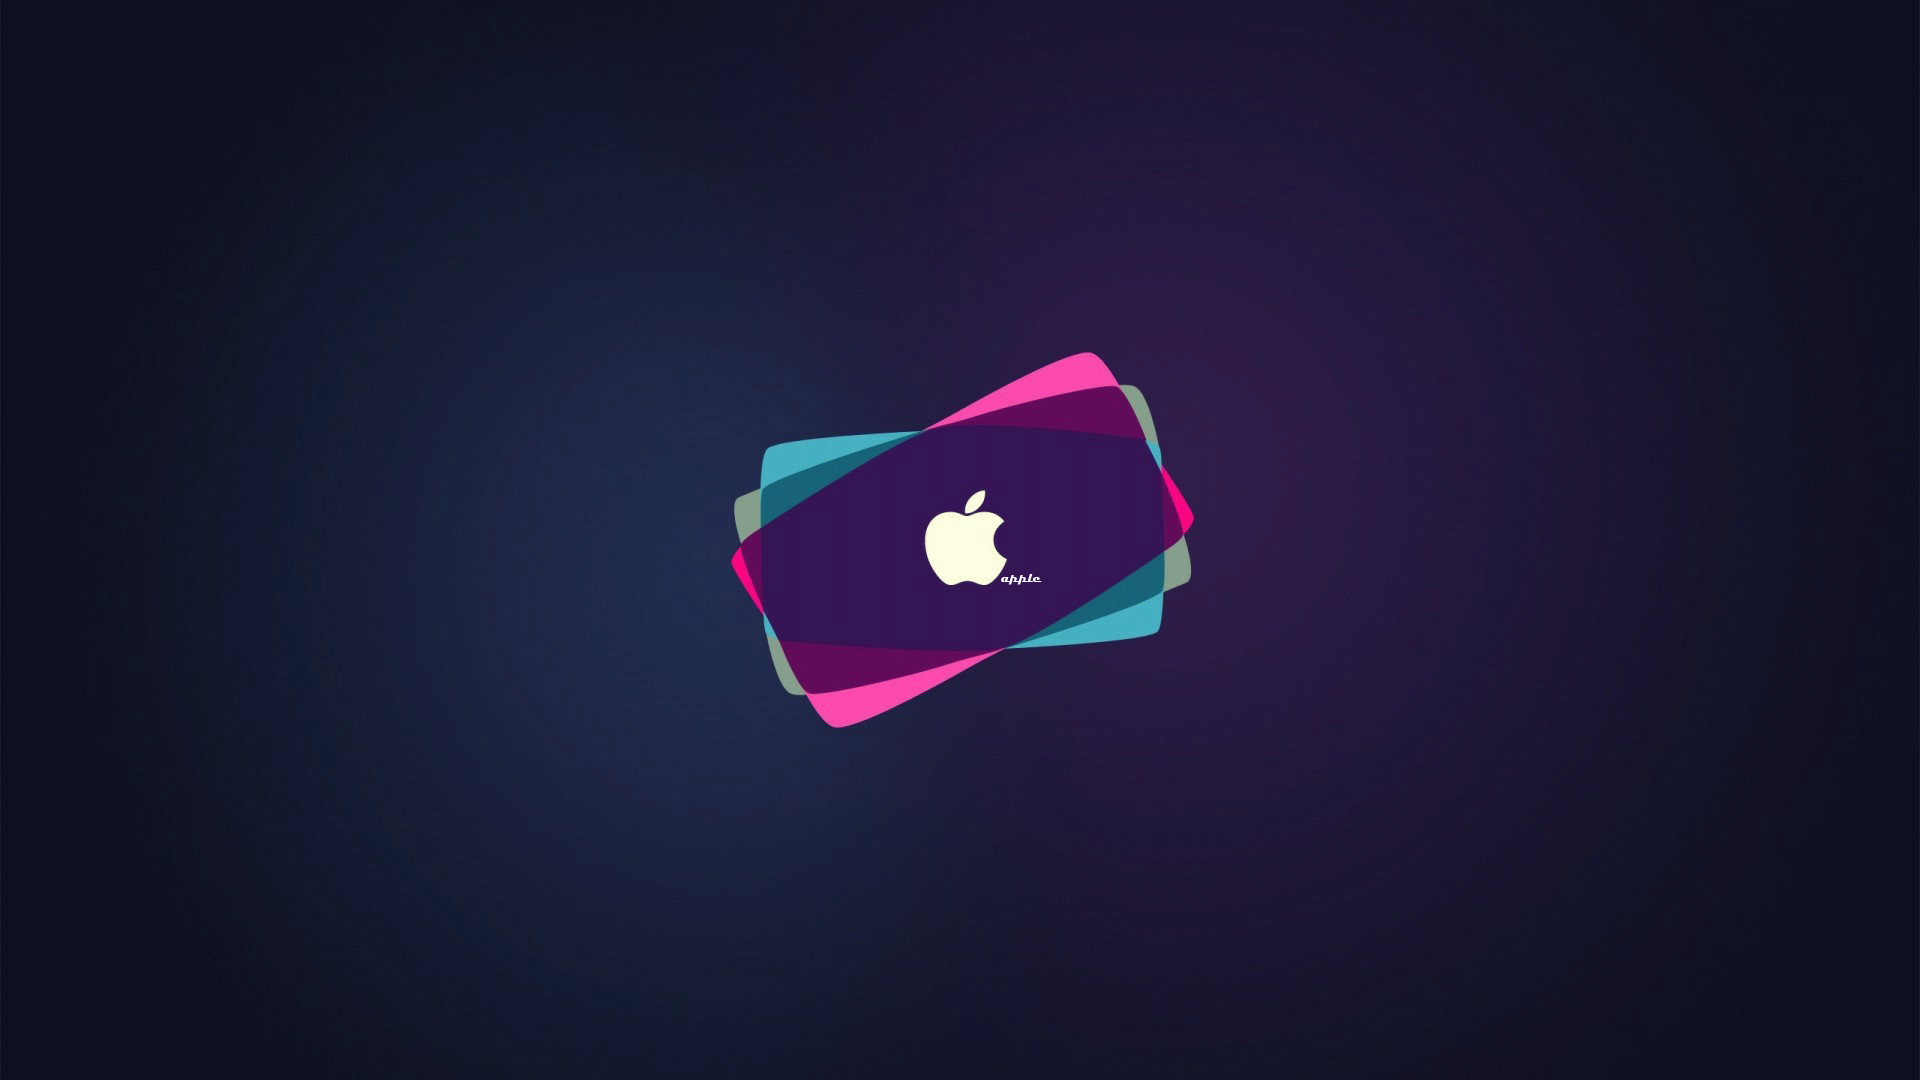 Hd wallpaper for mac - Mac Wallpaper 8